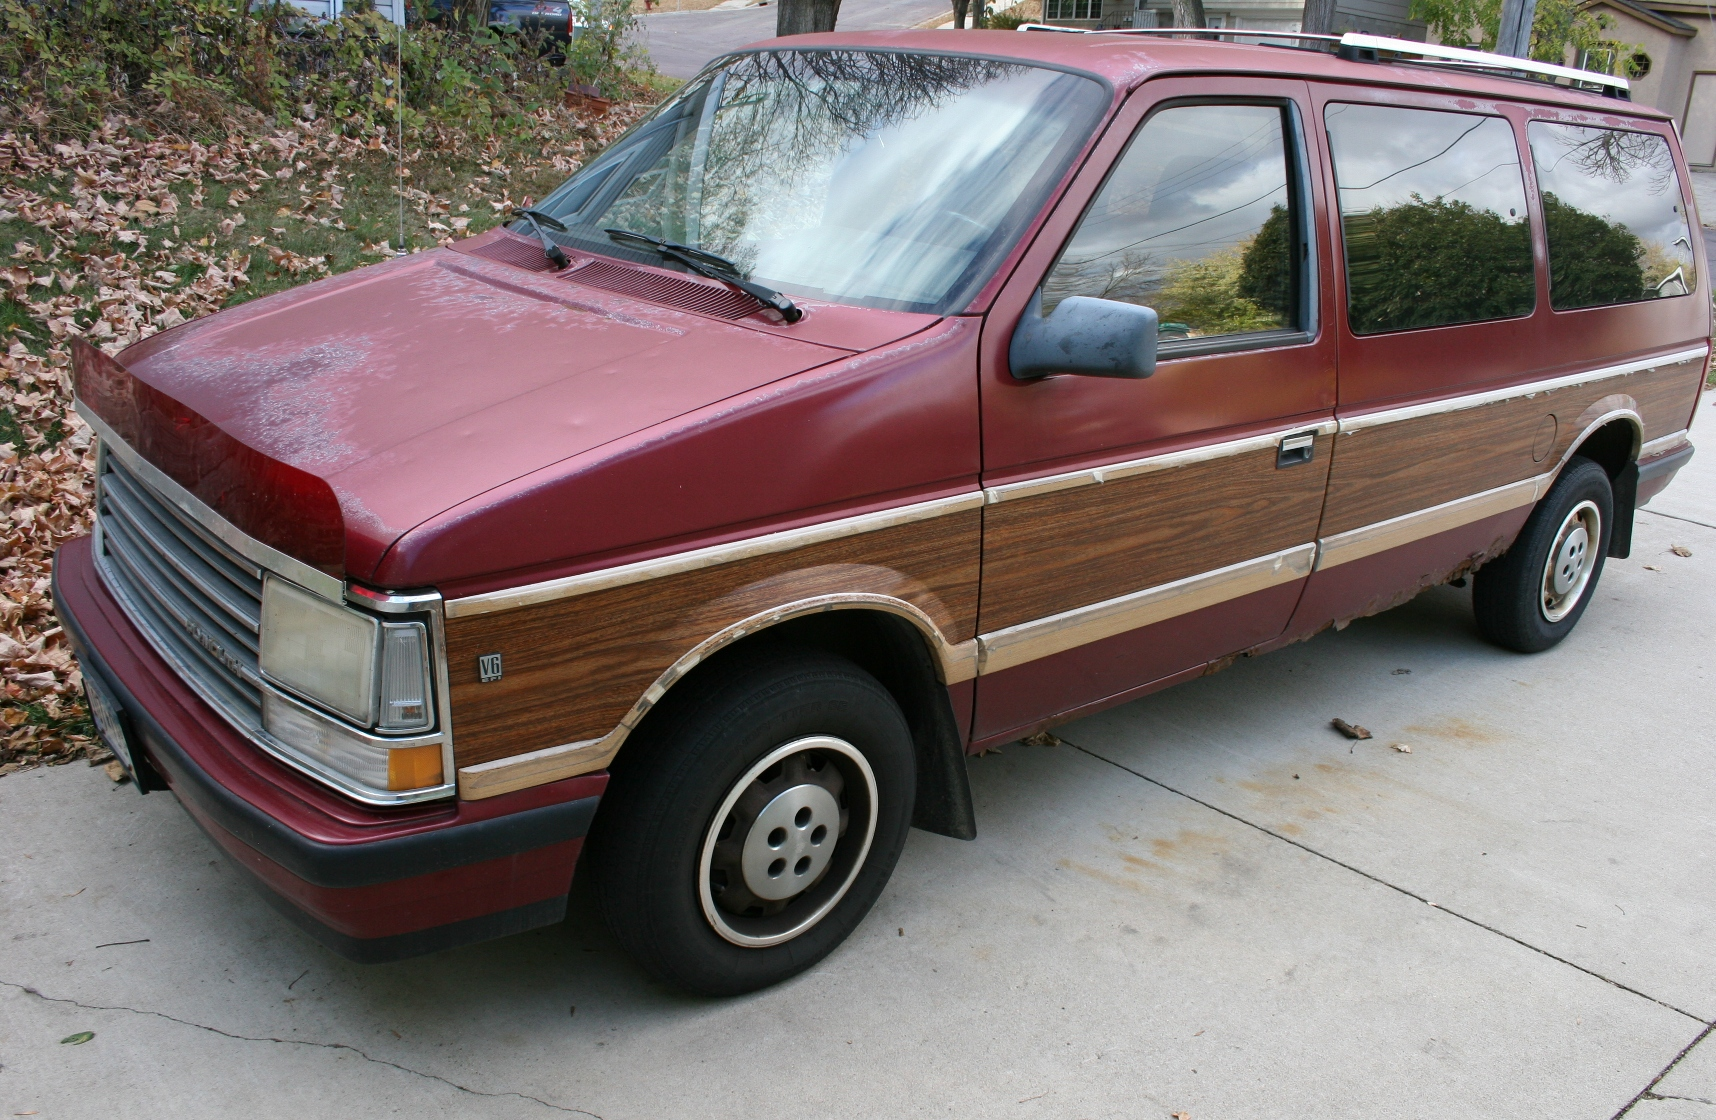 To replace the 1988 Plymouth